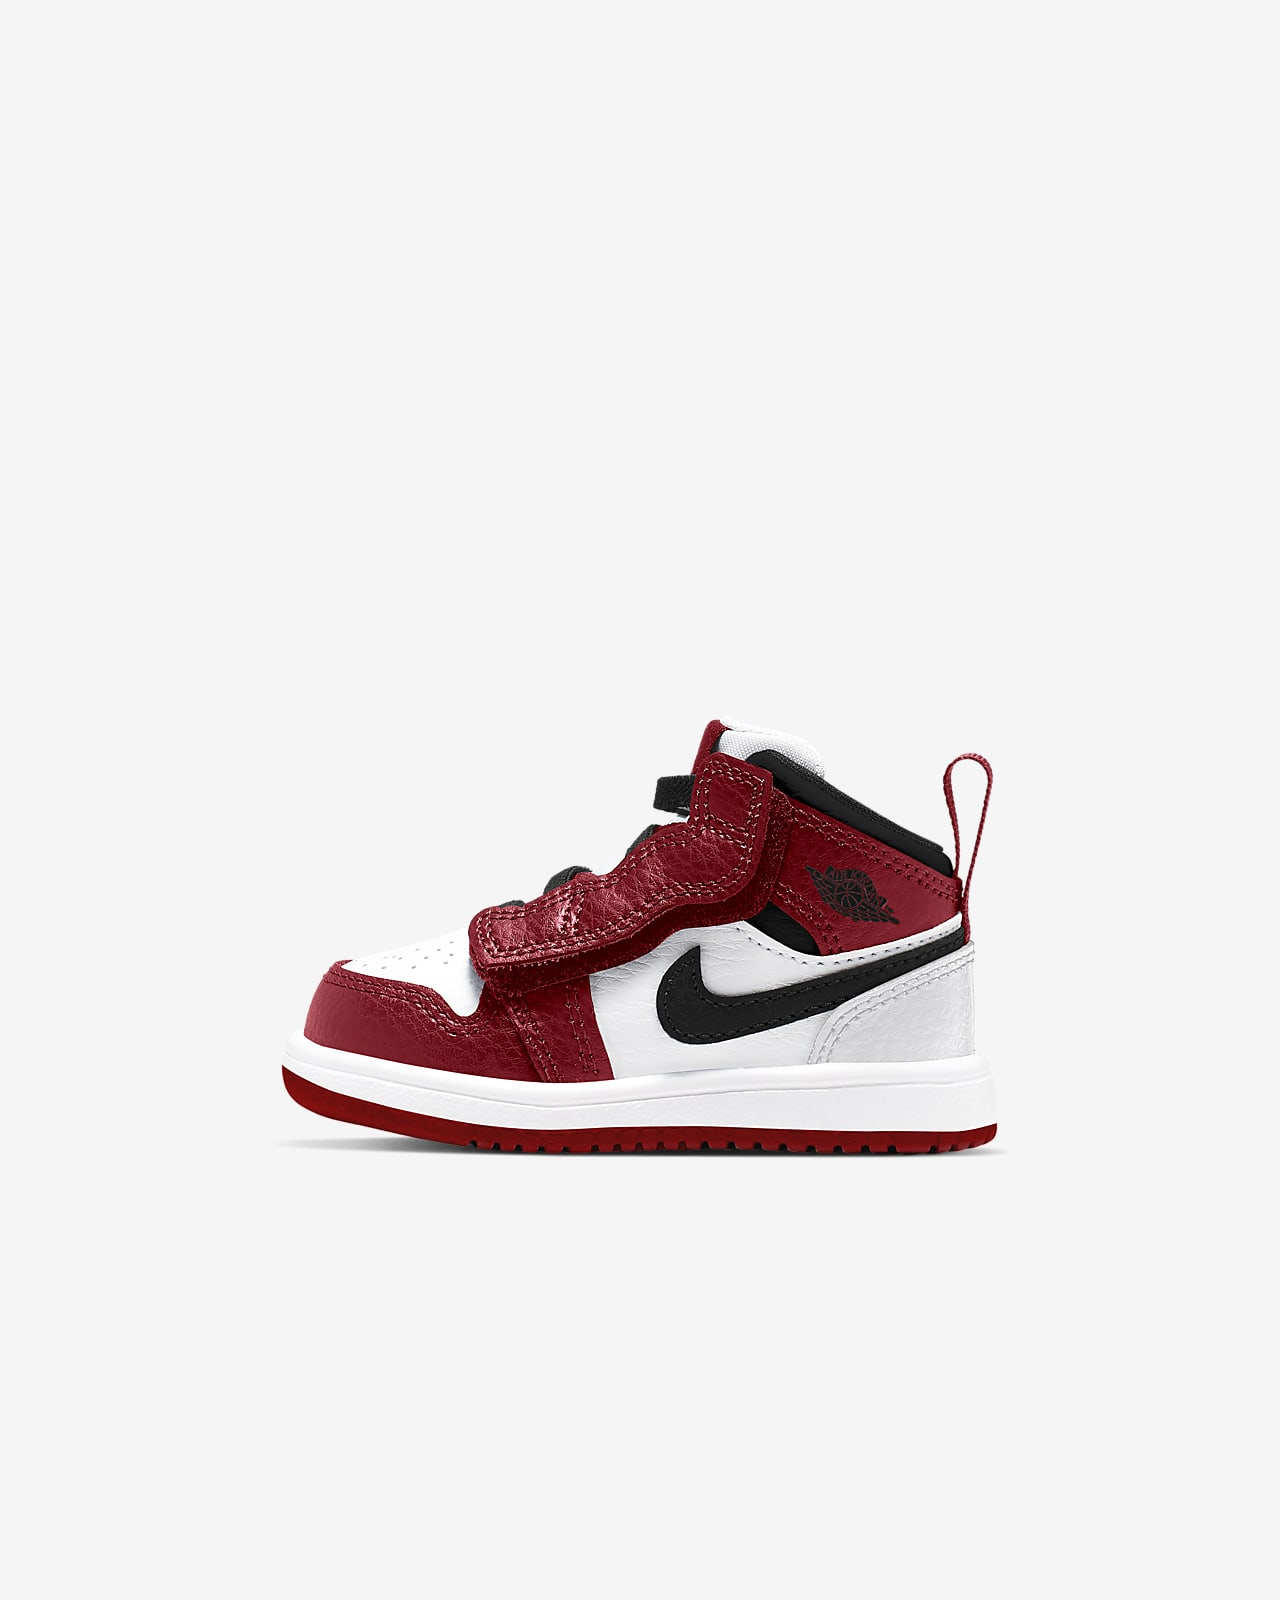 Jordan 1 Mid Baby and Toddler Shoe